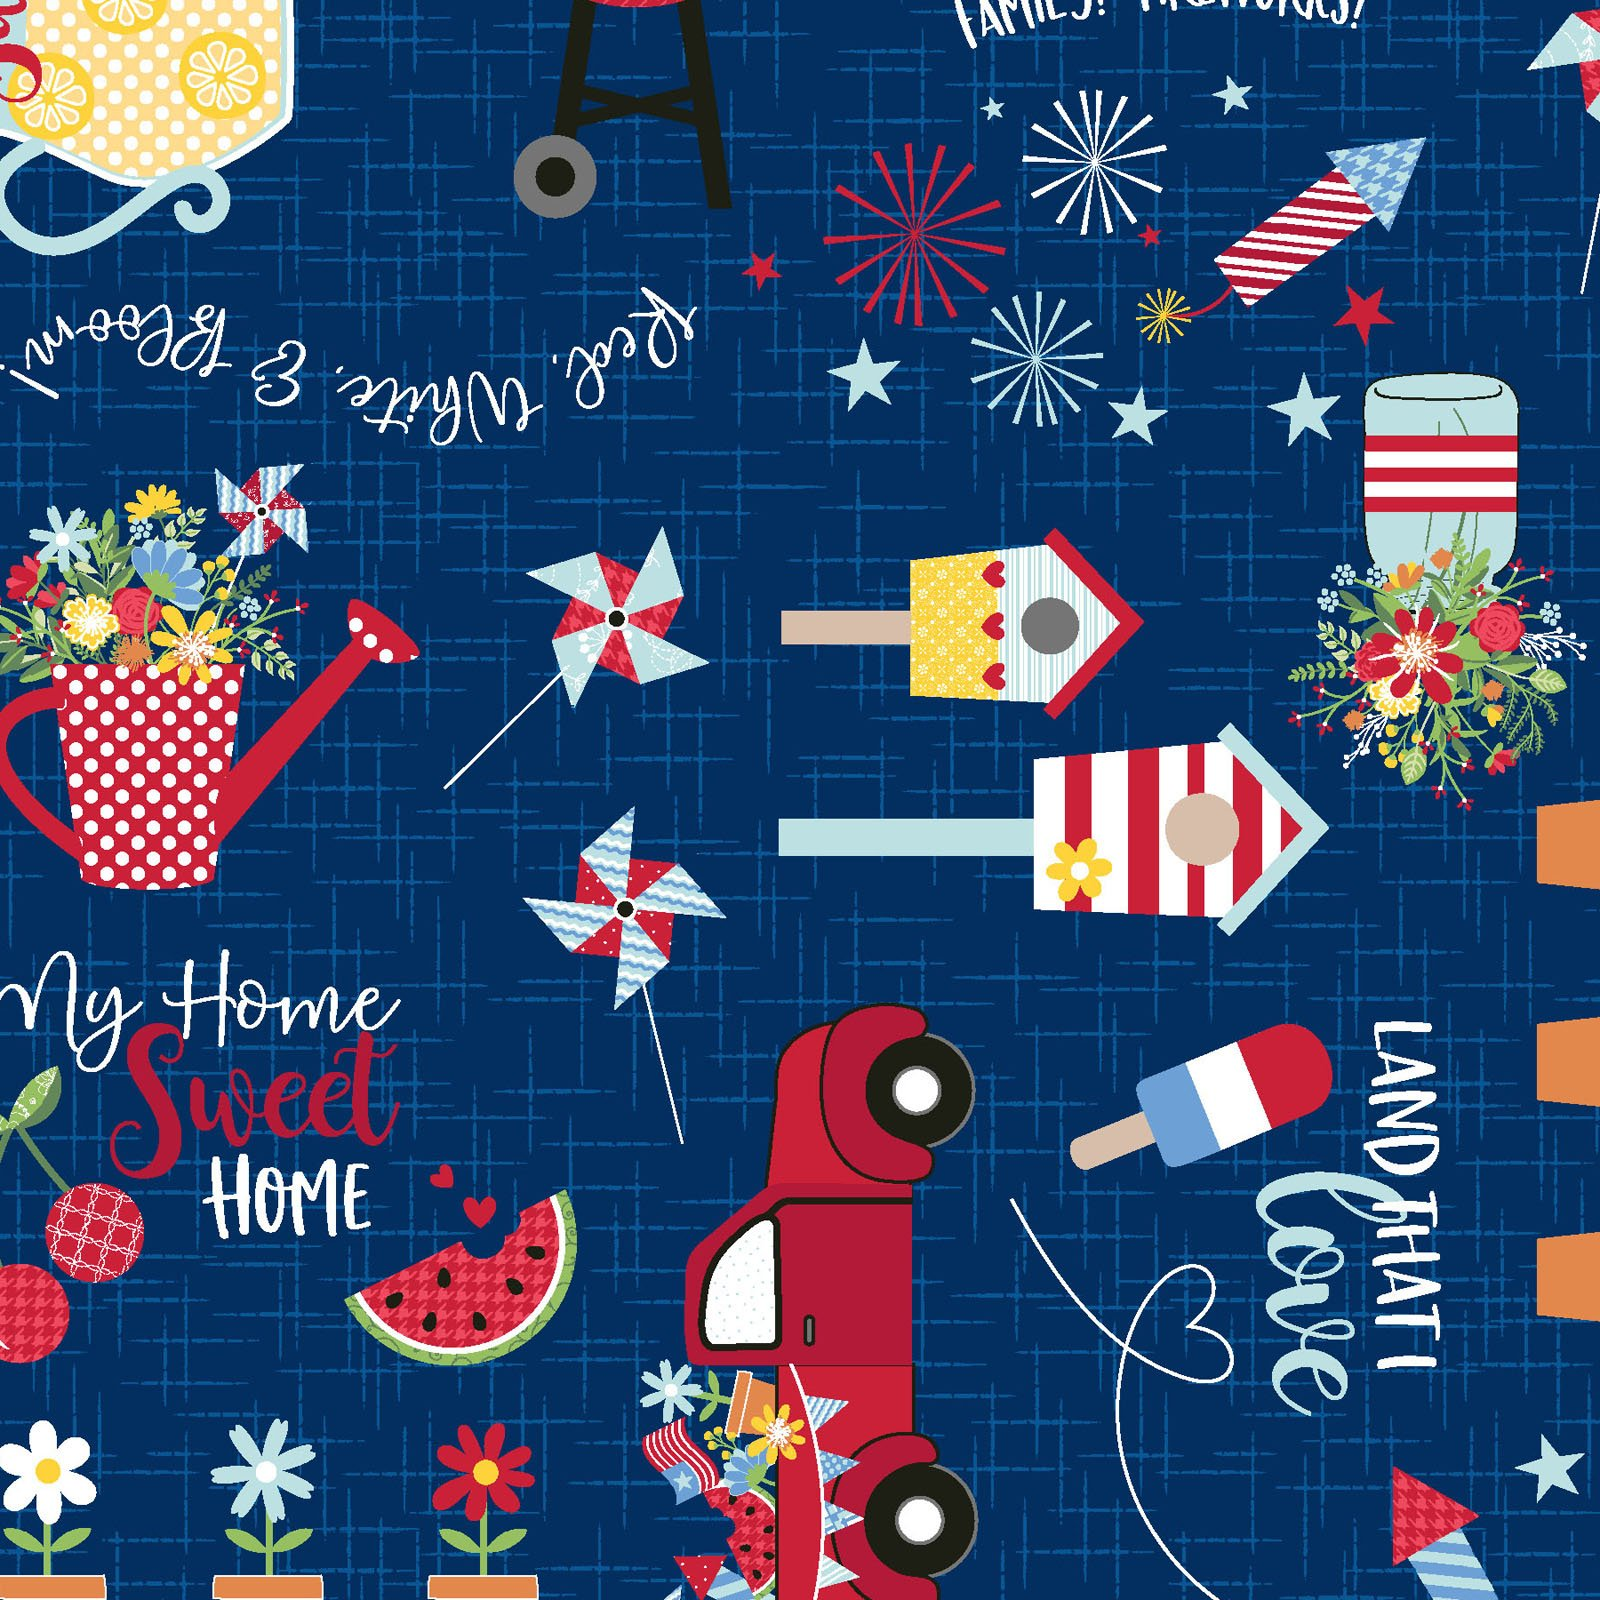 EESC-9901 N - RED, WHITE & BLOOM BY KIMBERBELL GRAFFITI MULTI NAVY - ARRIVING MARCH 2021